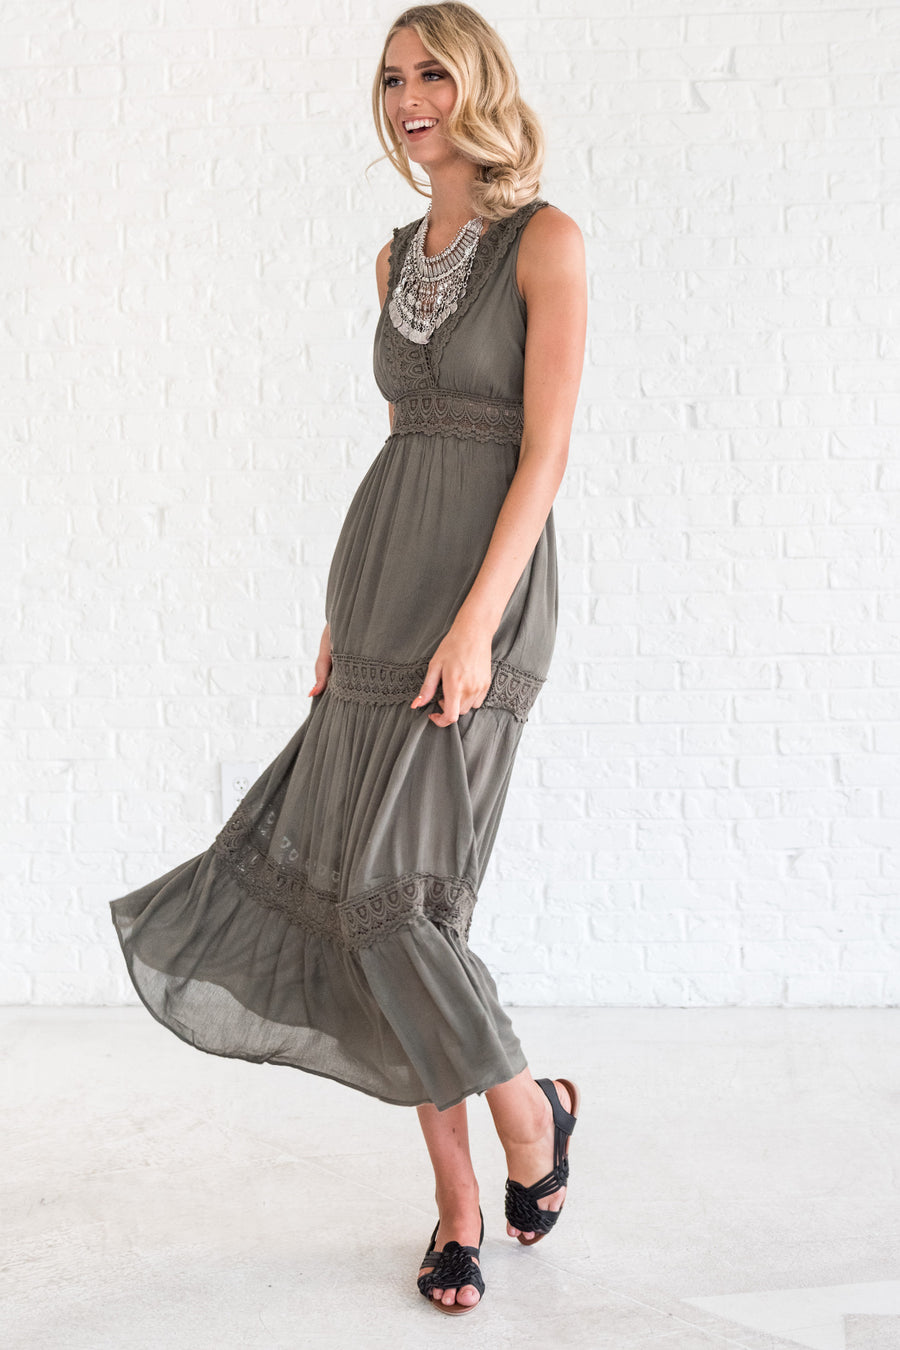 829008fb05b Fairytale Ending Olive Maxi Dress